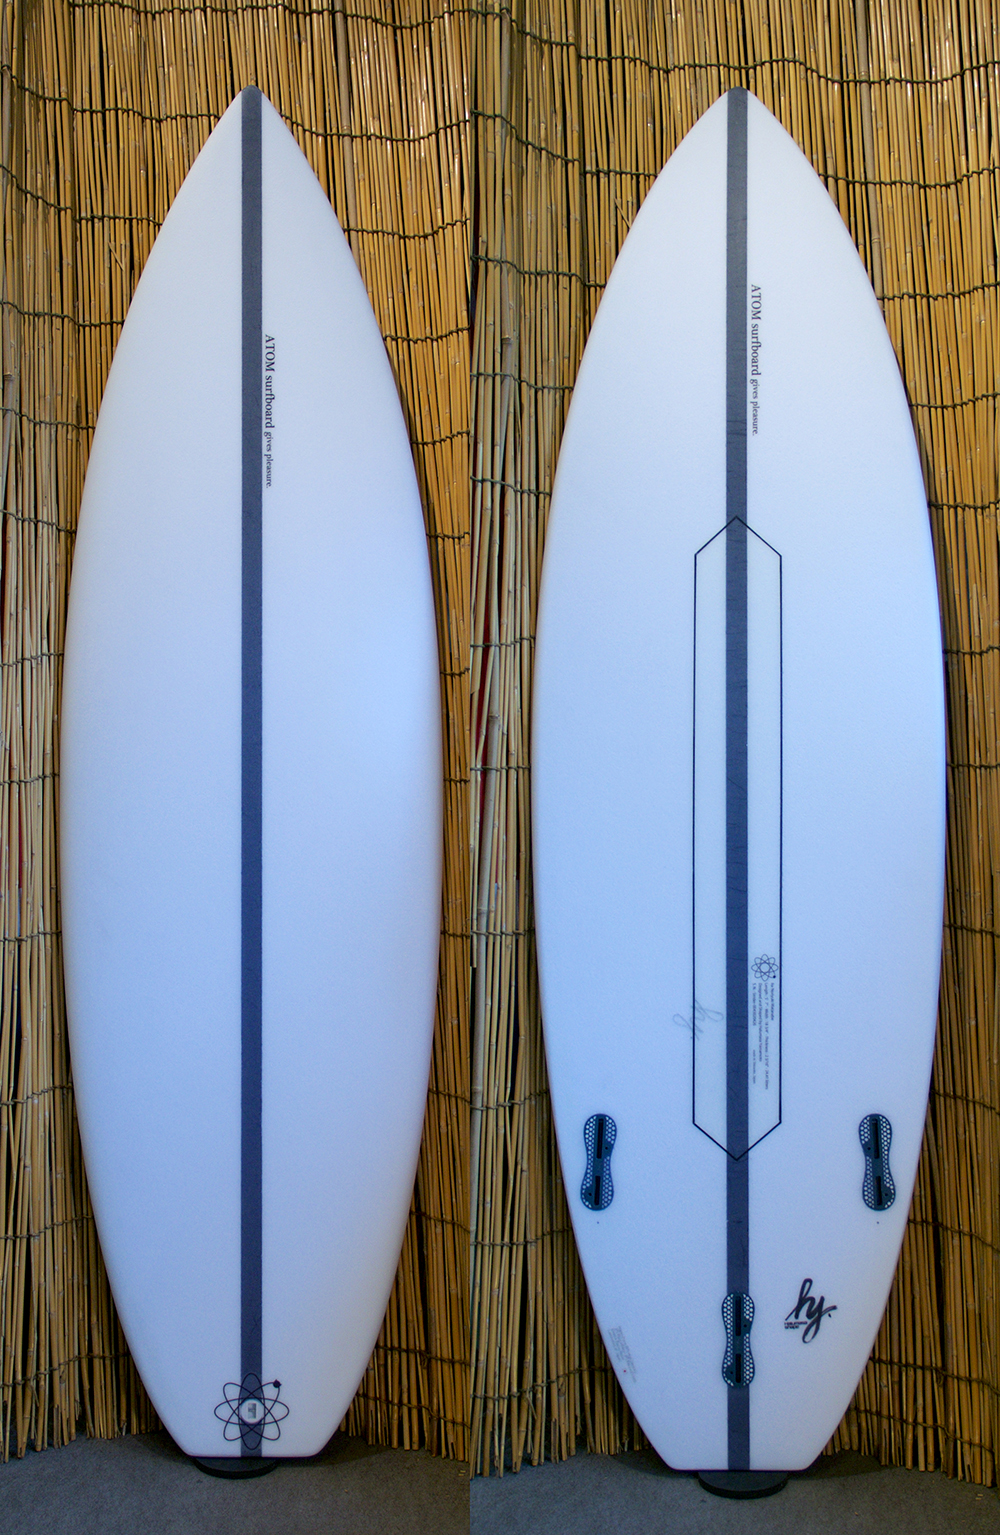 ATOM Surfboard Strider model ATOM Tech